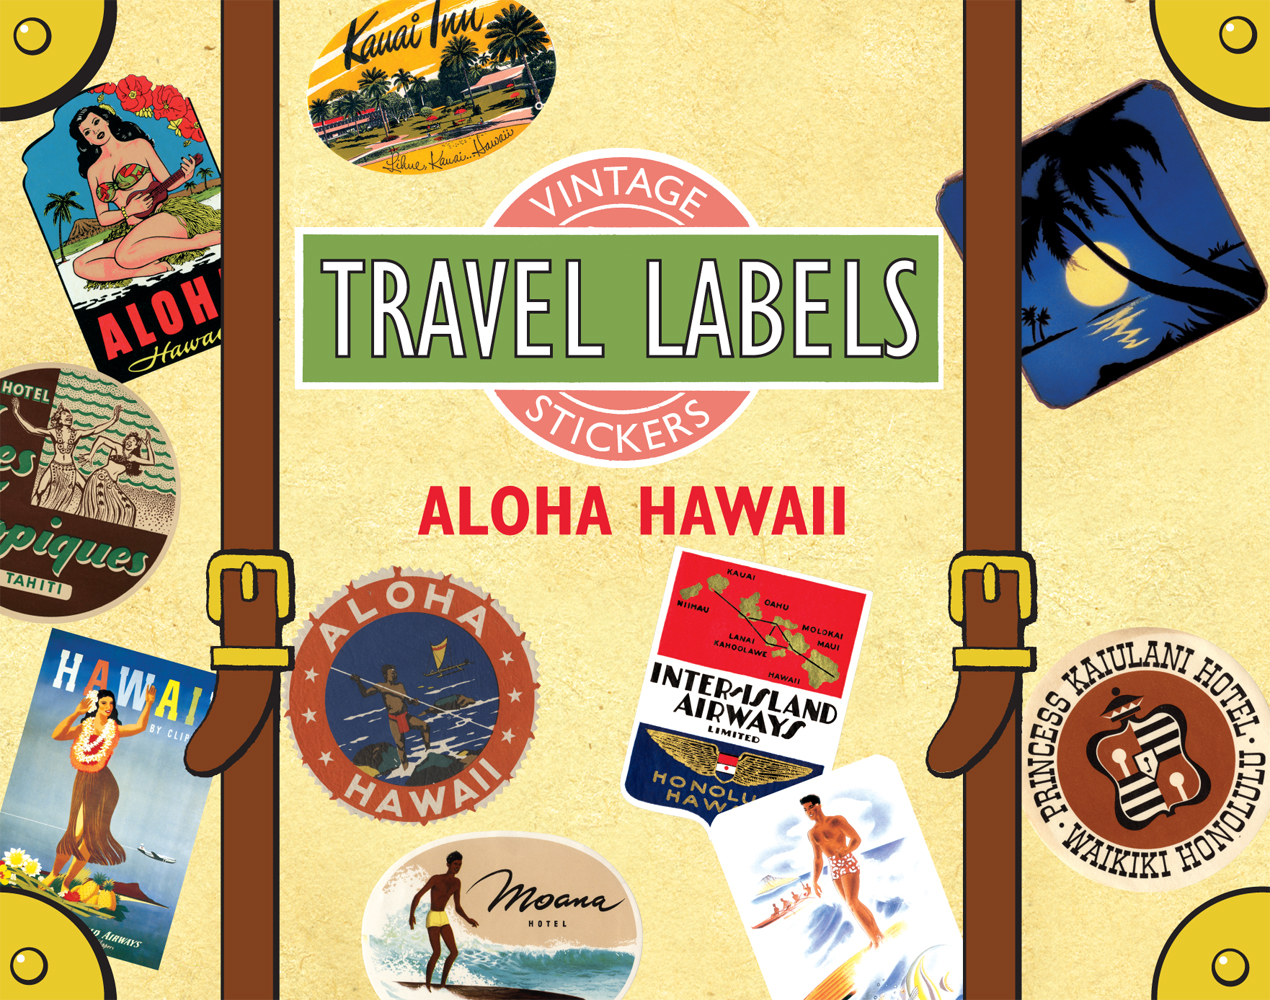 Aloha Hawaii Travel Labels | Travel Stickers This box contains 20 individual peel-and-stick labels that are suitable for scrapbooking, decoupage, gift wrapping and wherever your stickering imagination takes you.'